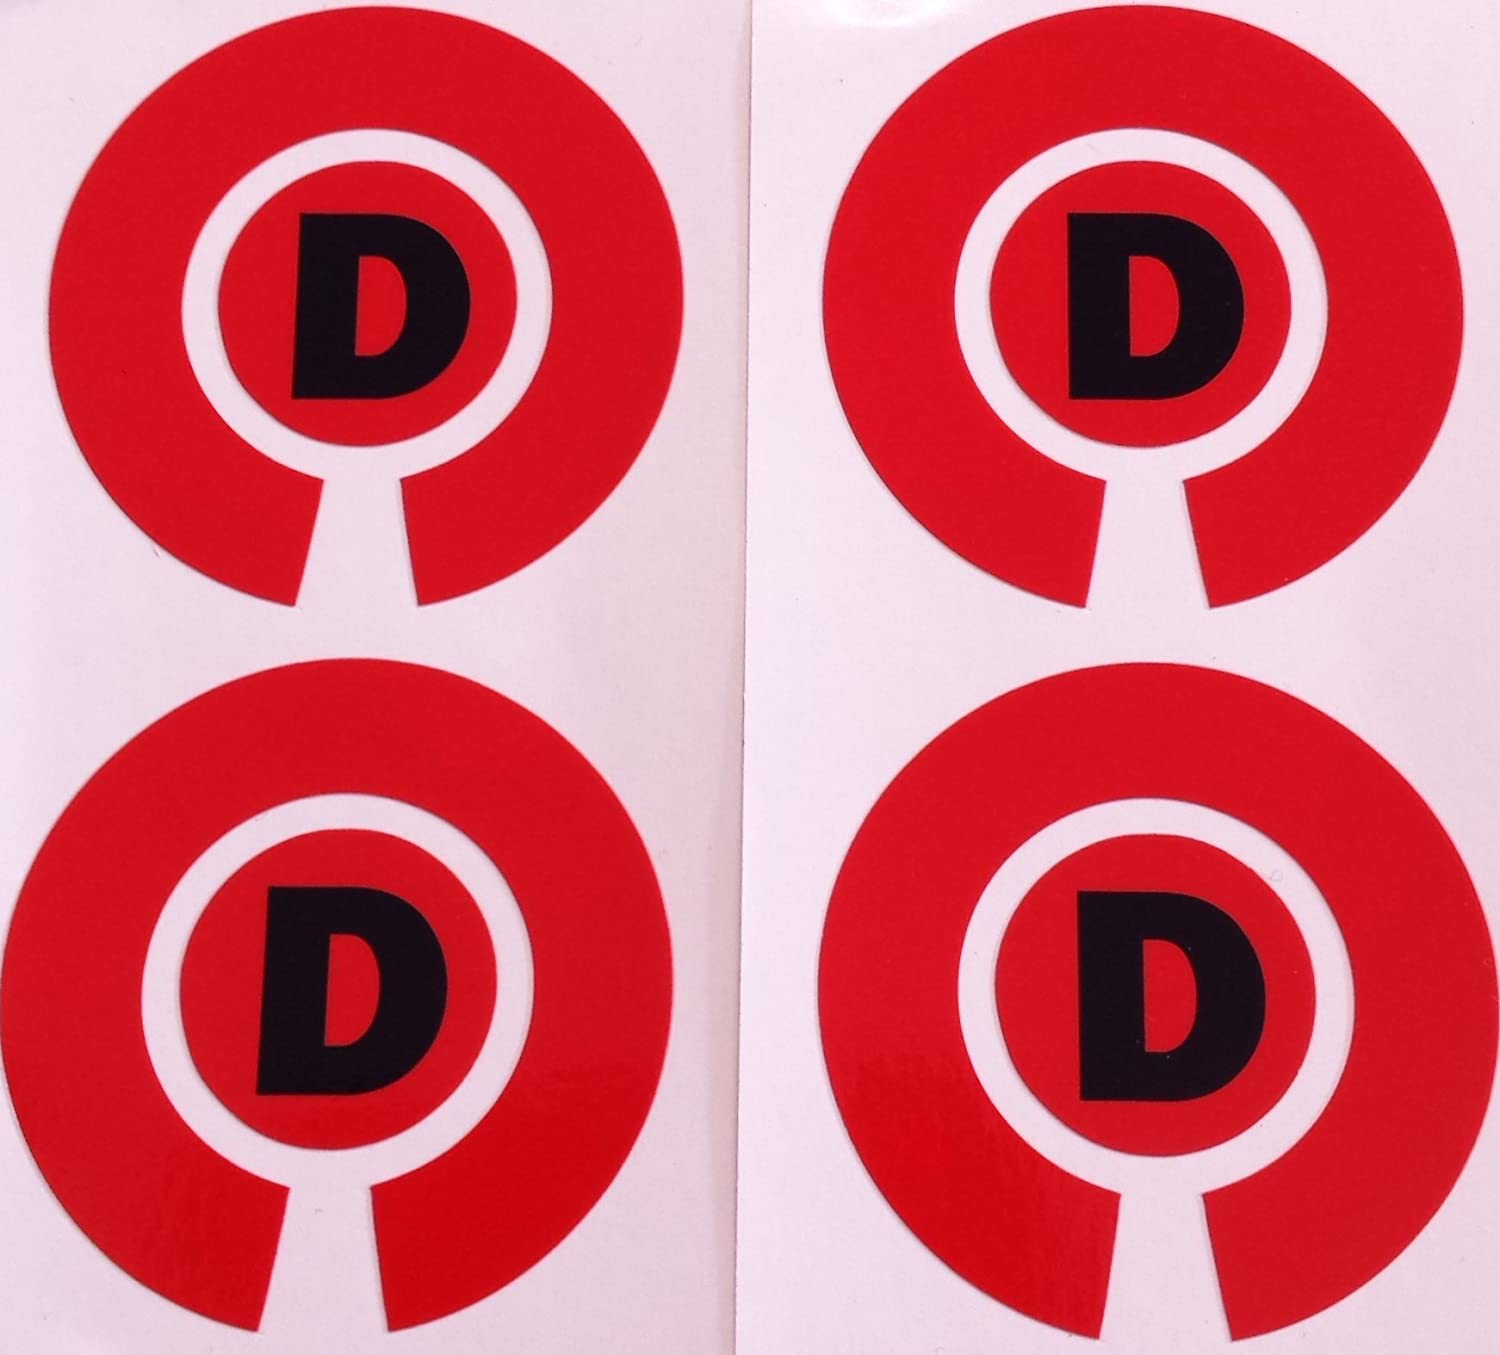 Crown Green Lawn Indoor Bowls Adhesive Lettered Coloured Marker Labels Set of 4 (Red, D)